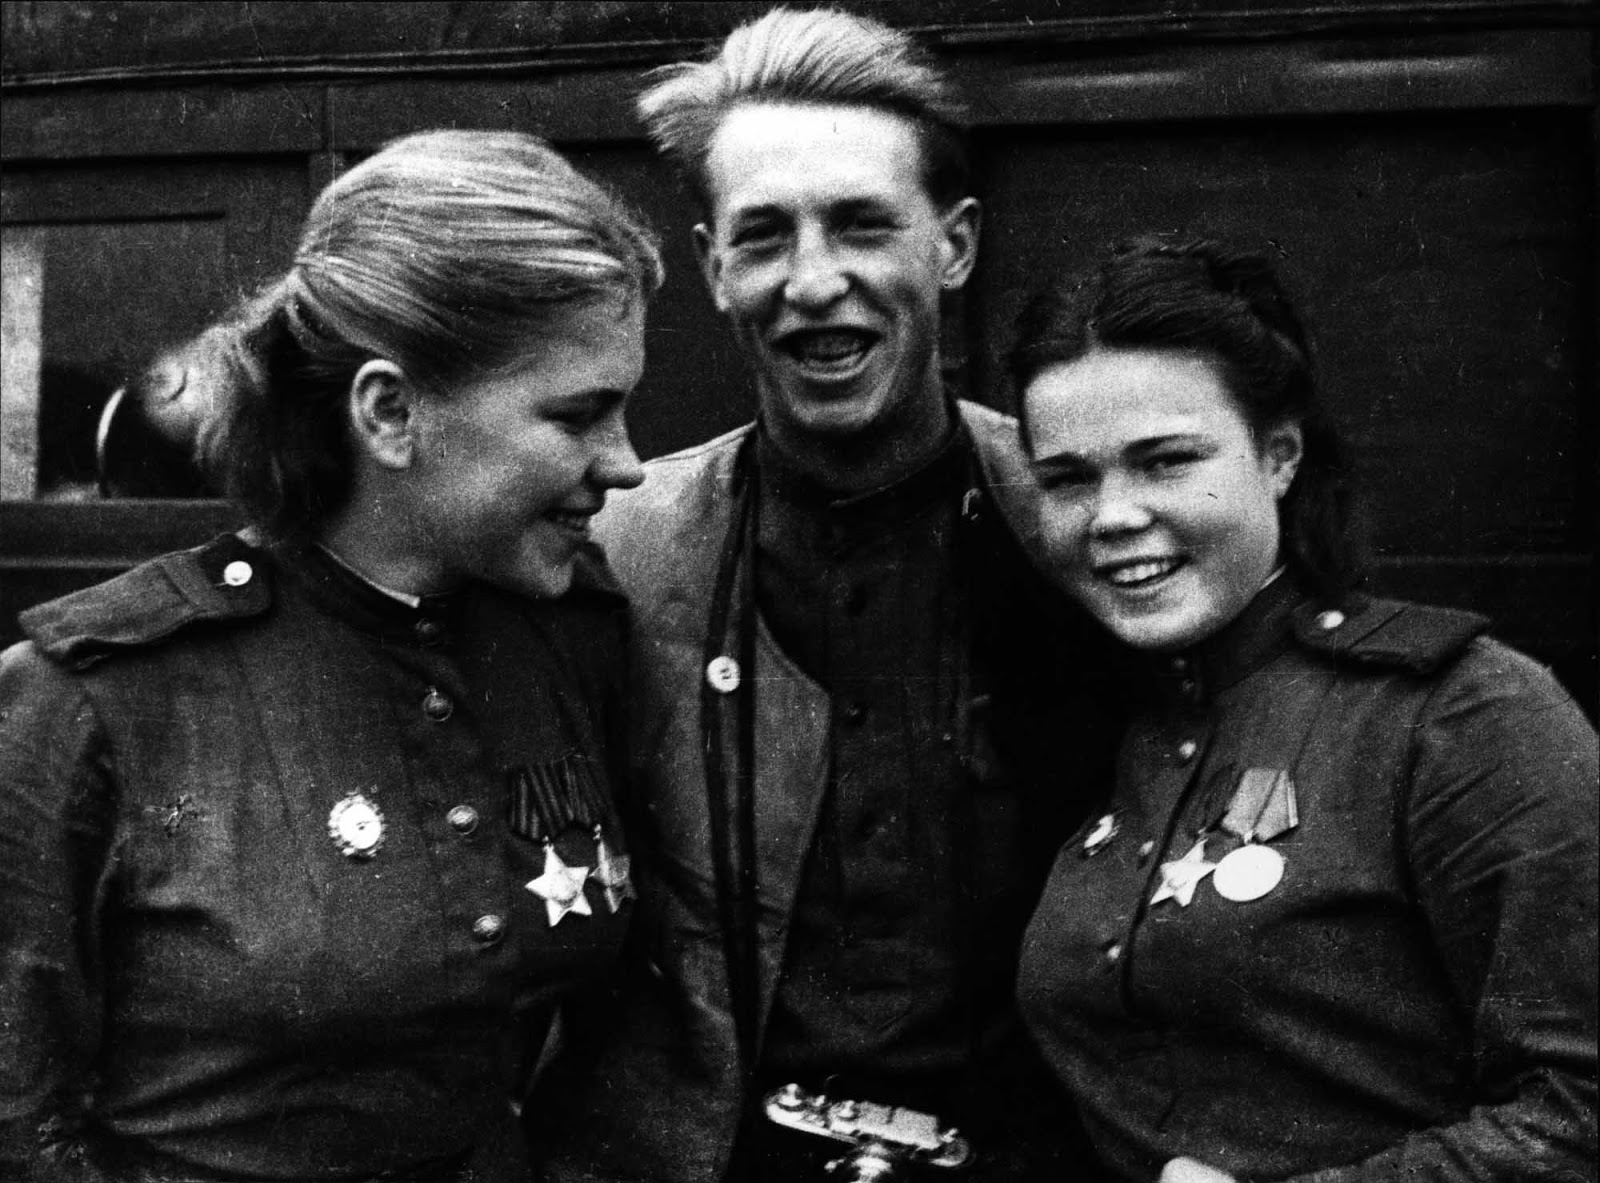 Sergeant Roza Shanina (left), Sergeant Evdokia Fedorovna Krasnoborova and war correspondent of the newspaper